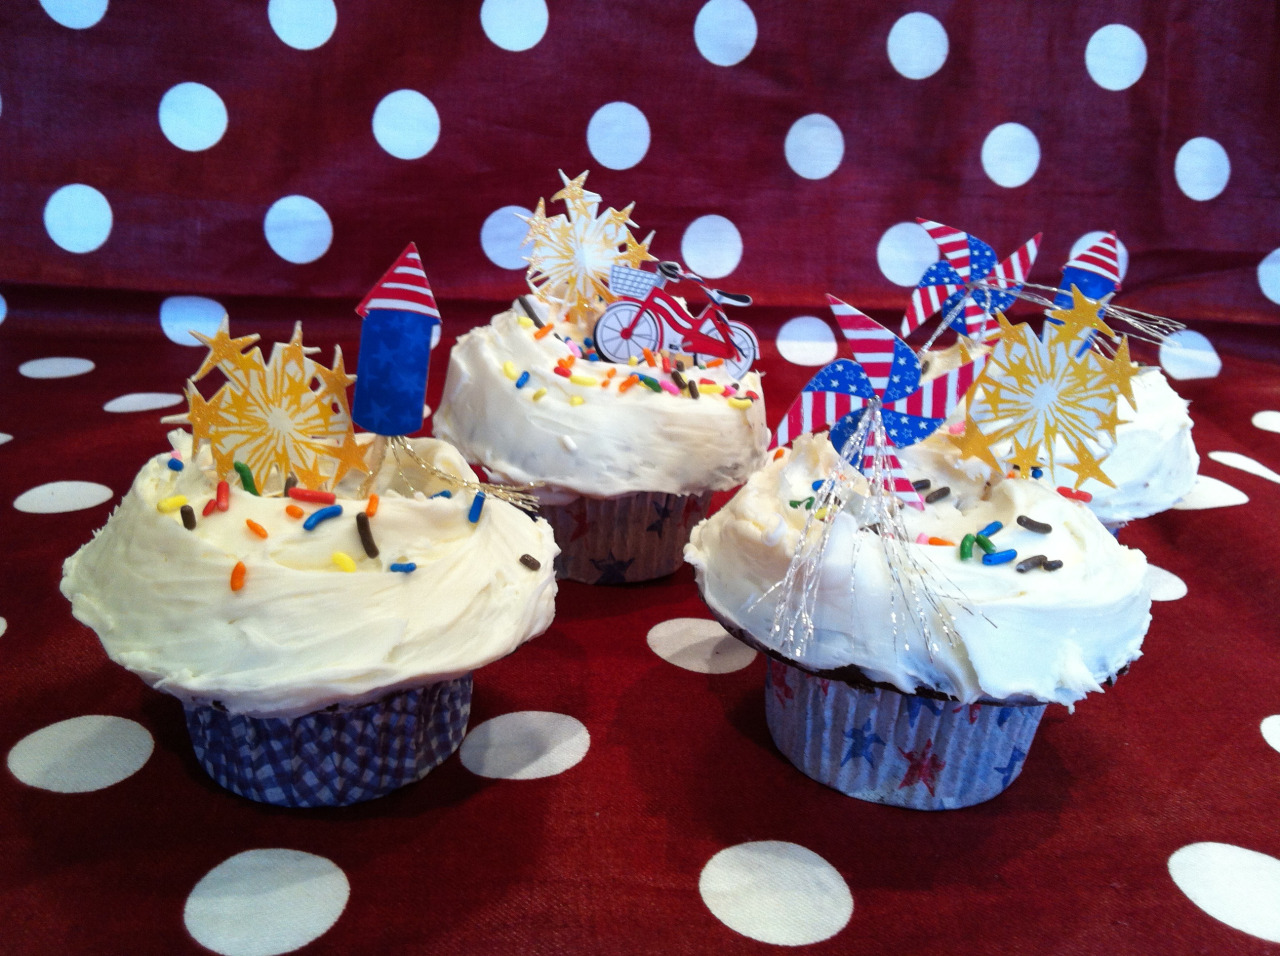 Cupcake, You're a Firework!  It just takes a little time and effort for a festive and fun cupcake dessert for the 4th of July. Take you favorite recipe and frist with  Vanilla Buttercream , plenty of it too. This is what make a cupcake with eating. My recipe for a generous and creamy frosting follows below.   Line your cupcake tins with any variation of red, white, and blue cupcake papers. I got these on sale at  Sur La Table . I also picked up colored sprinkles because they remind me of fireworks. Katy Perry's song has been going through my head all day.   Whatever recipe you use, make sure the cupcakes are cooled completely before frosting.    Vanilla Buttercream (This make a generous amount of frosting) 1 pound of Unsalted Butter  2 boxes of Confectioner's Sugar 2 teaspoons Pure Vanilla Extra 2-4 tablespoons Heavy Cream     Let butter stand at room temperature for 30 minutes. Cream butter and add Confectioner's Sugar, vanilla and heavy cream until desired. Frost in variations you prefer and add anything that looks like fireworks, colored sugar, edible glitter…          The important thing is that you make the effort to BE Goddess and put a smile on everyone's face!     Happy 4th of July!!!!